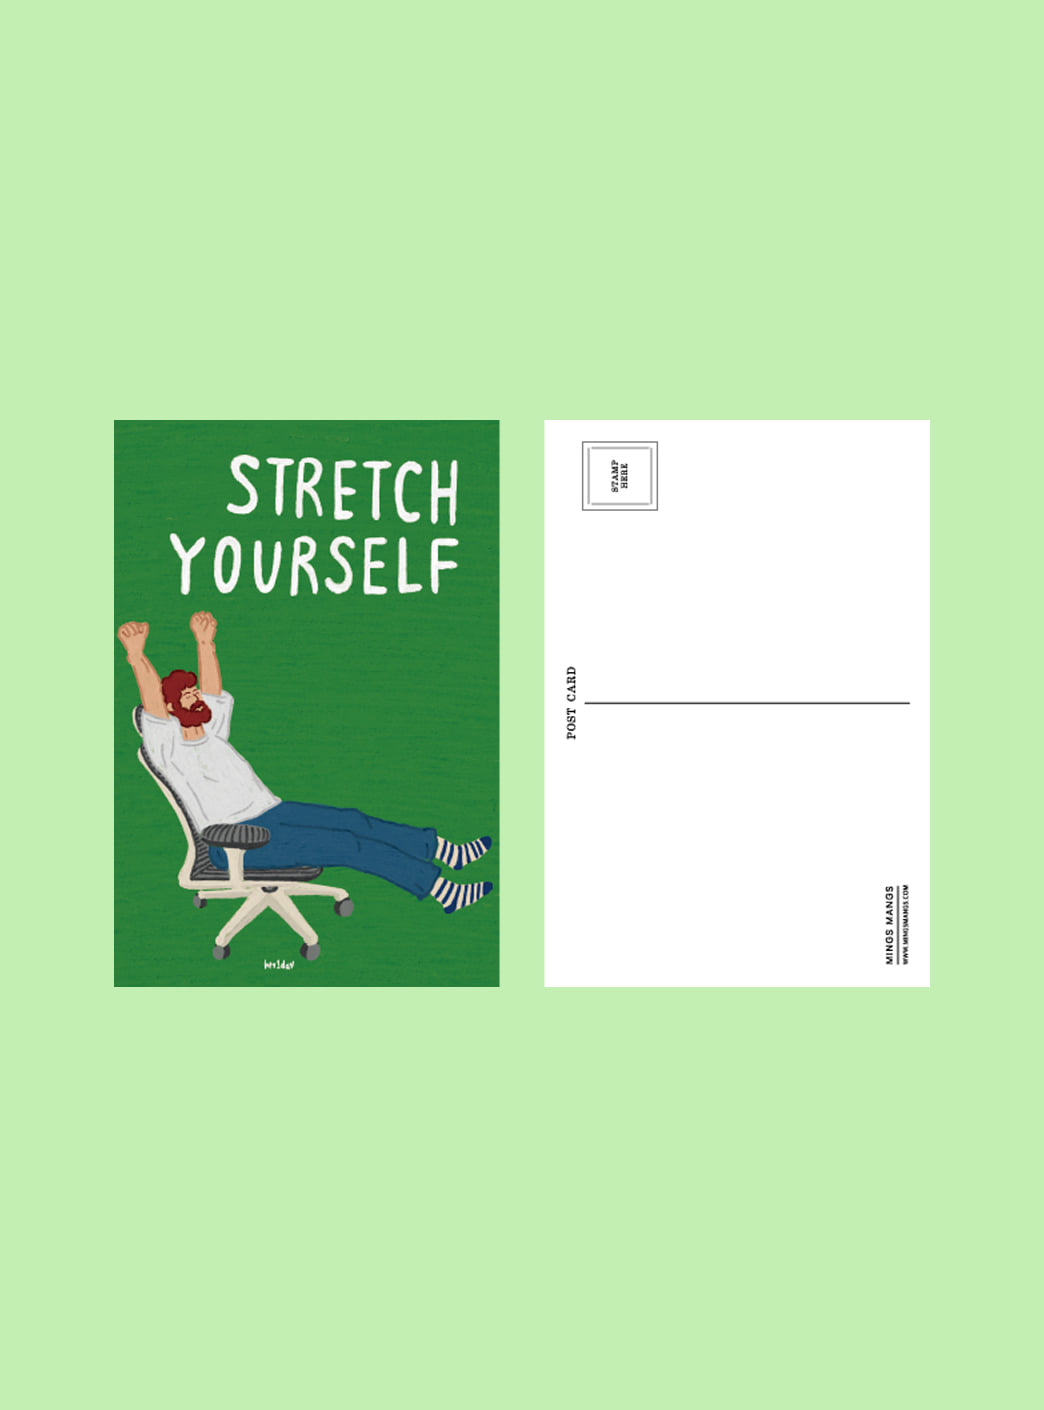 stretch yourself 엽서